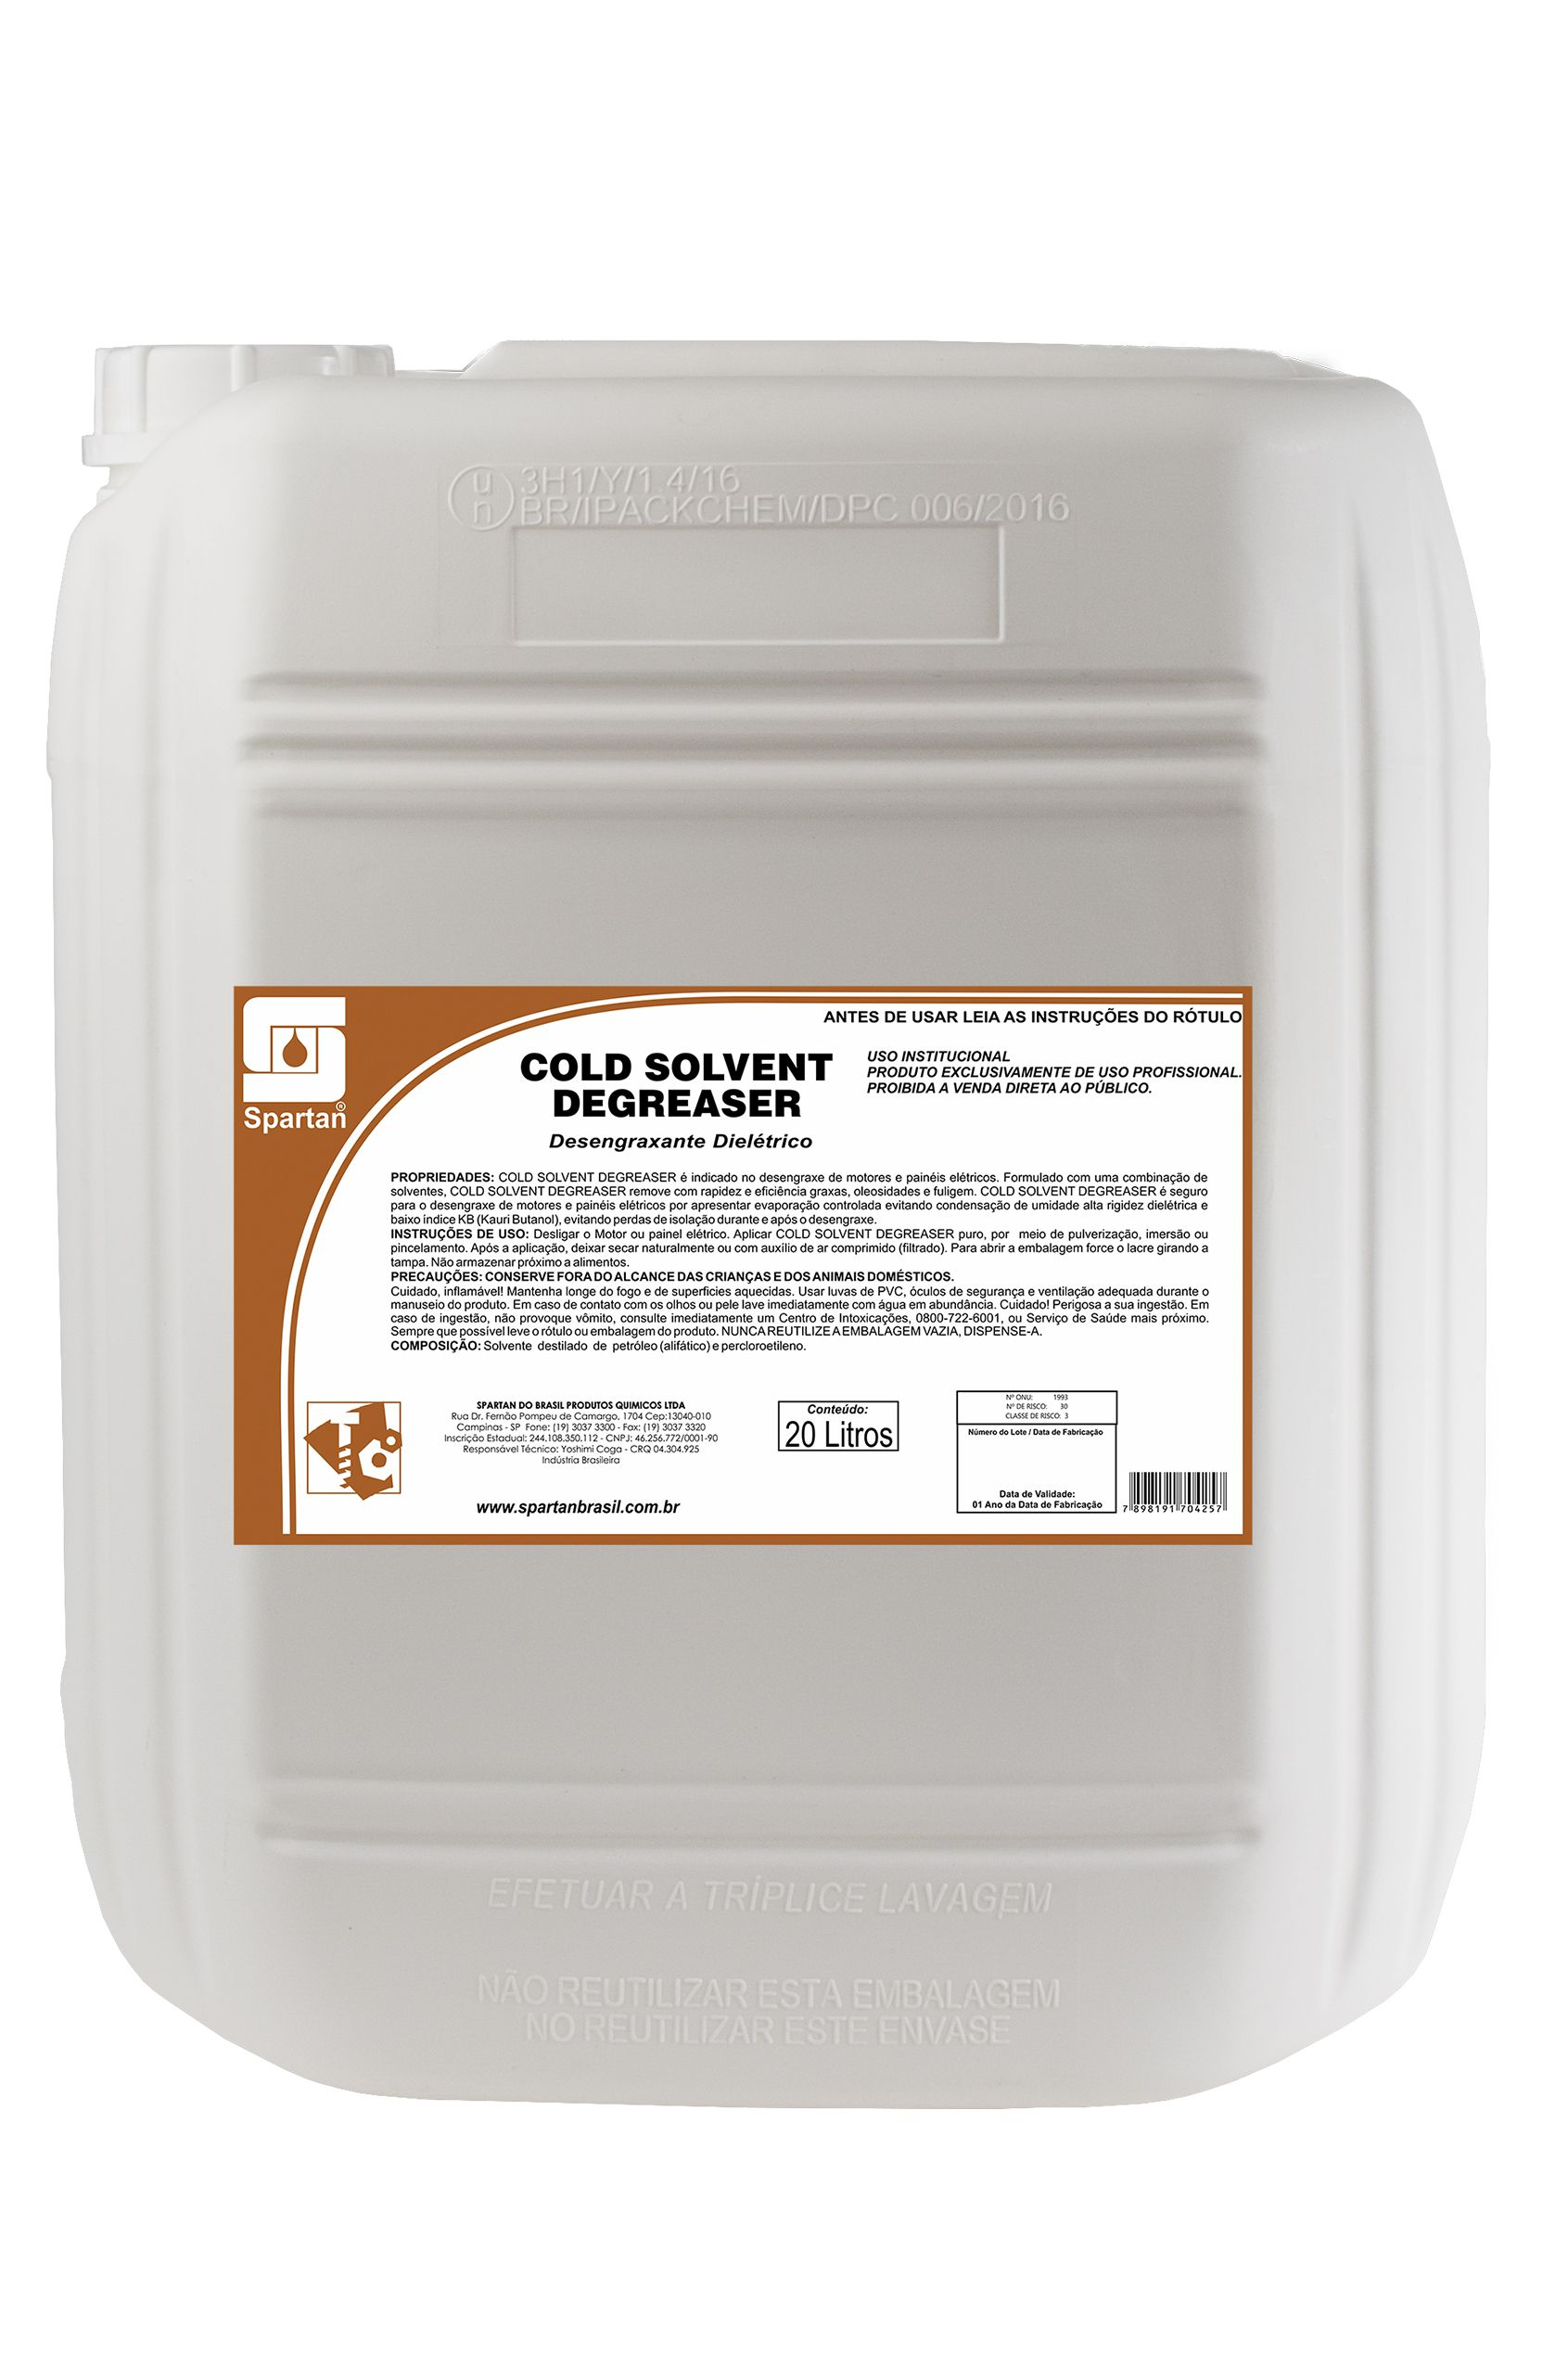 Cold Solvent Degreaser – CSD